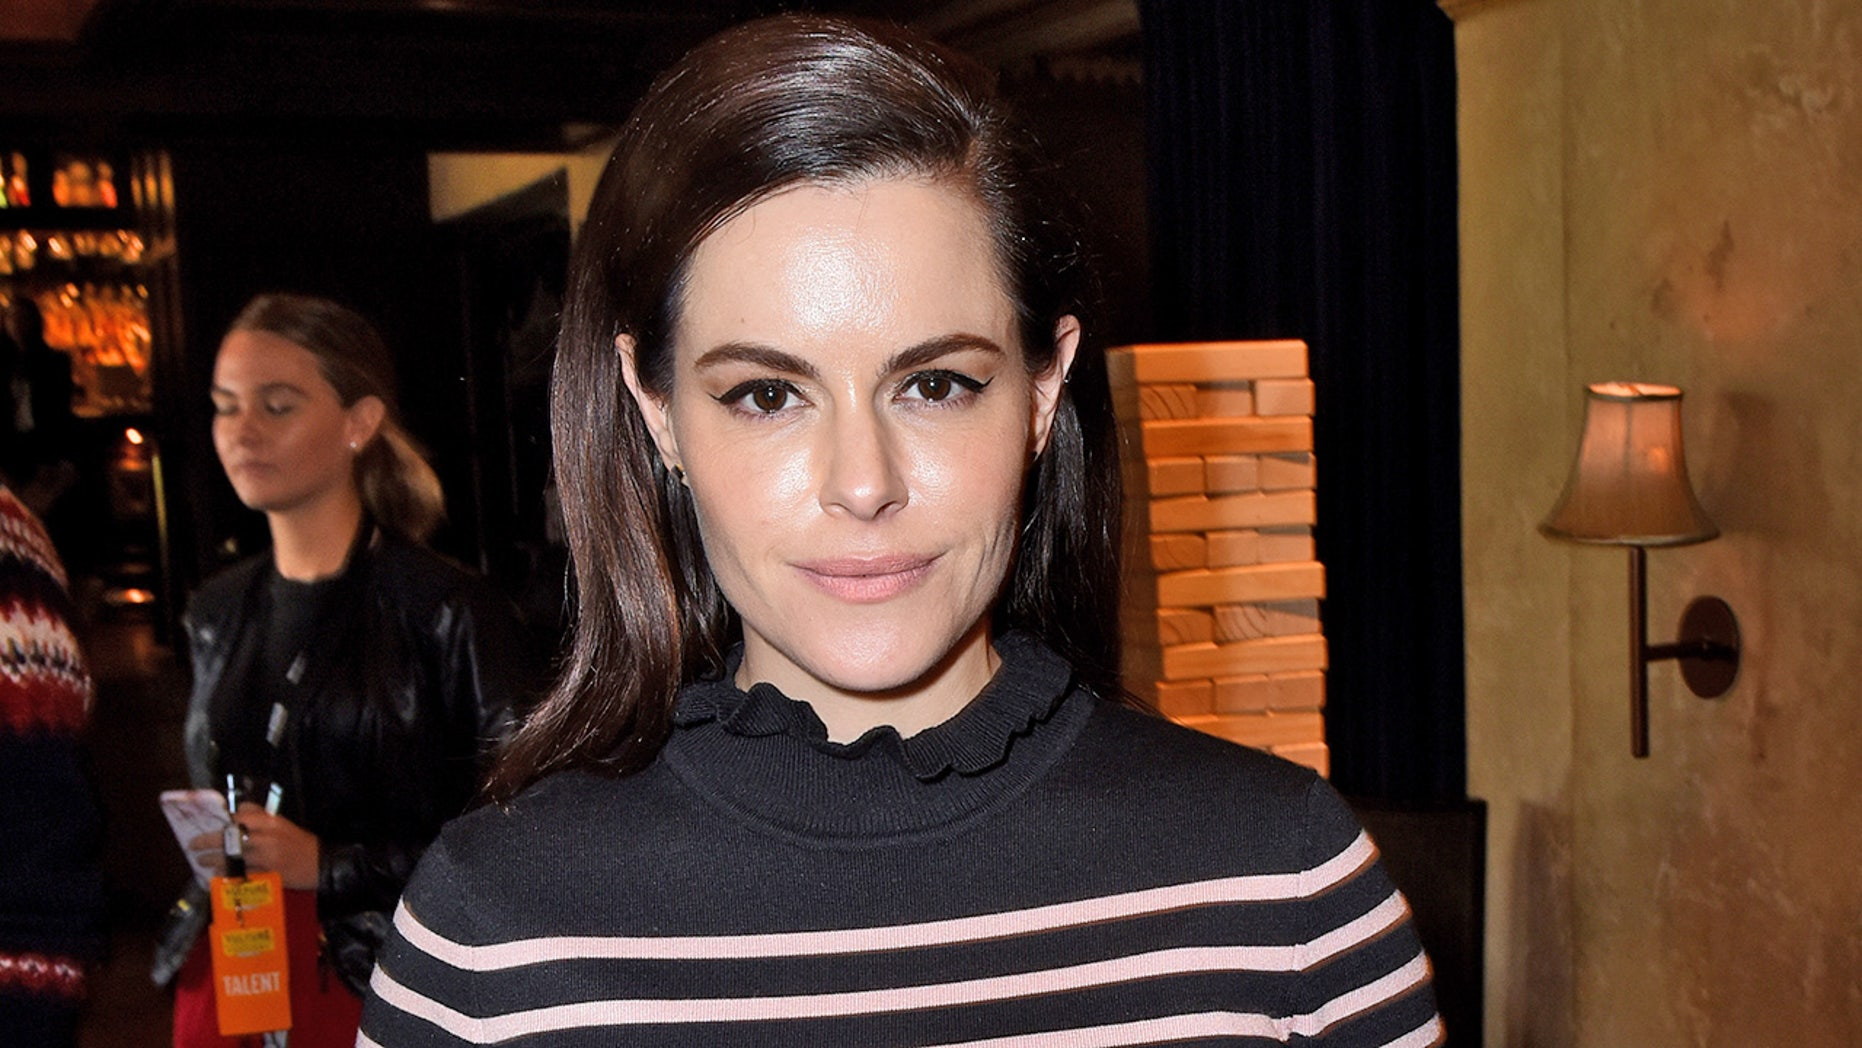 Schitts Creek Christmas Special.Schitt S Creek Star Emily Hampshire S Ex Wanted To Buy Her